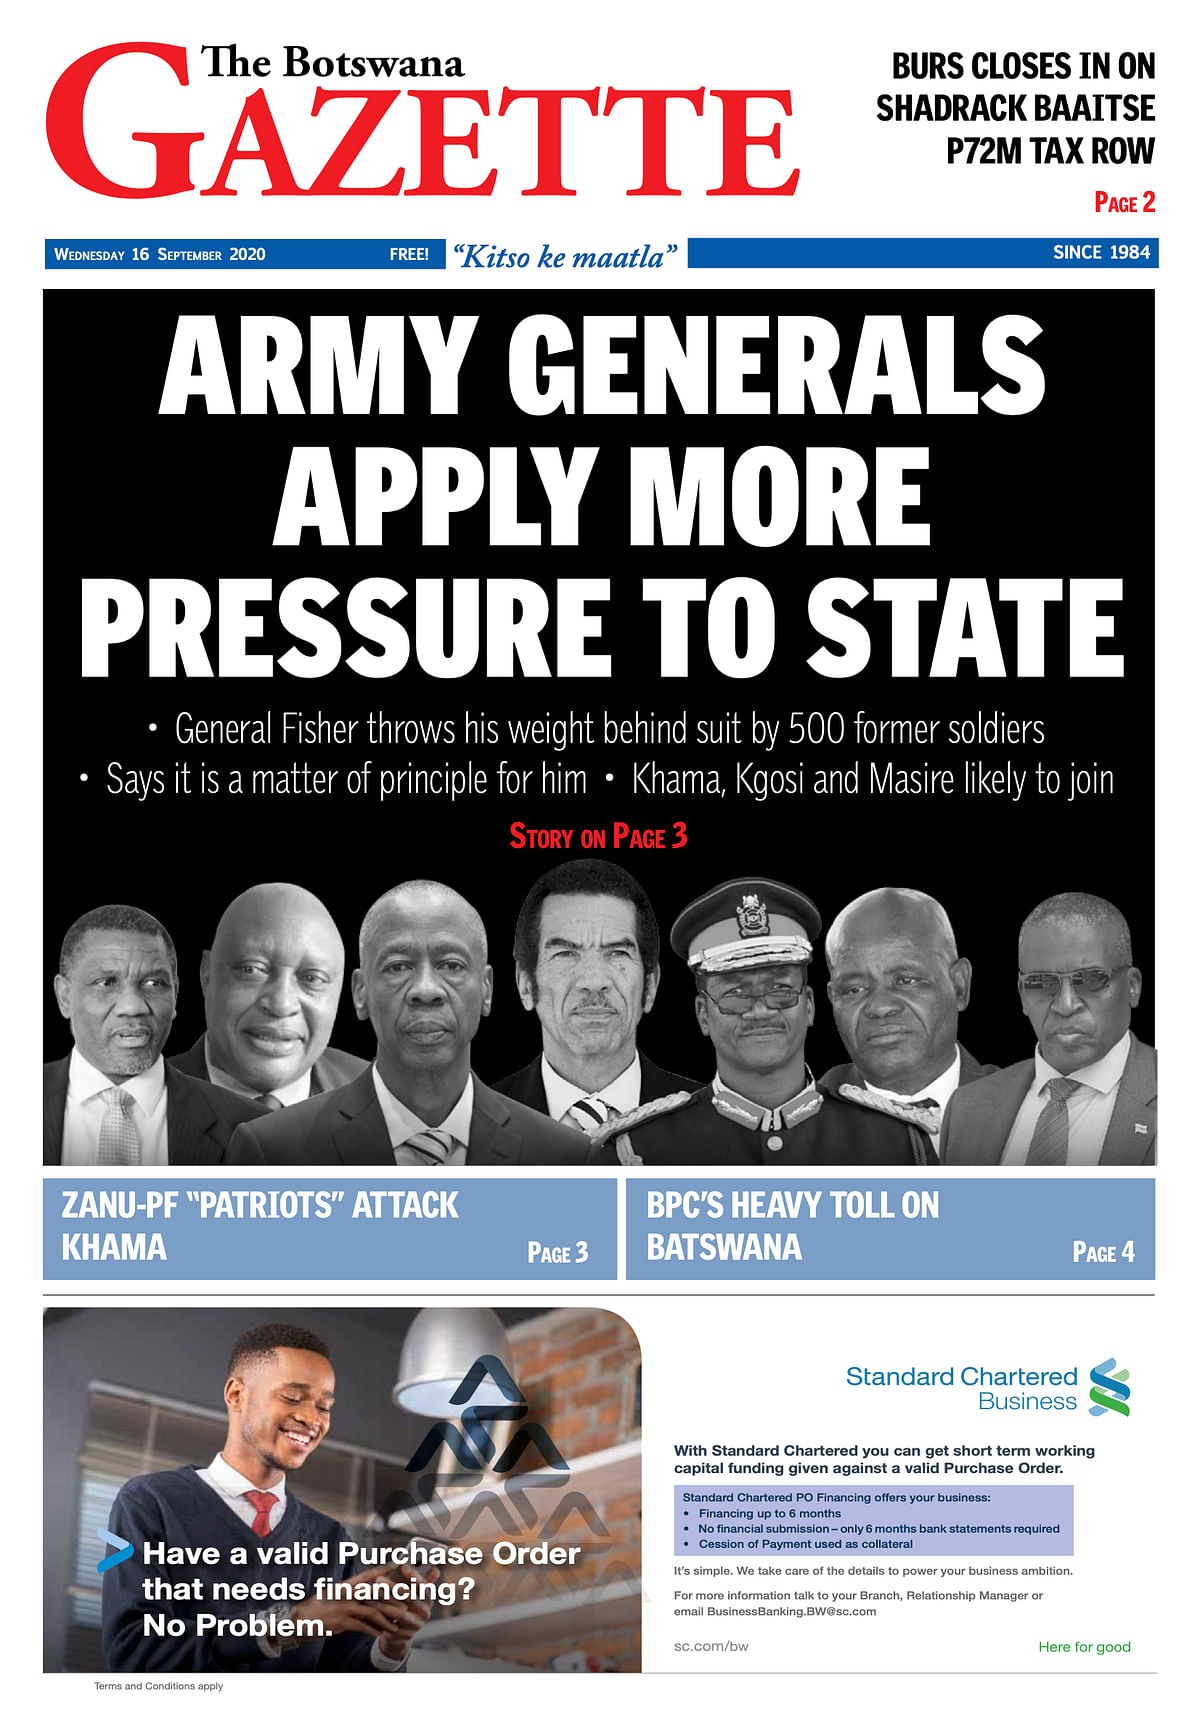 The Botswana Gazette 16 September 2020